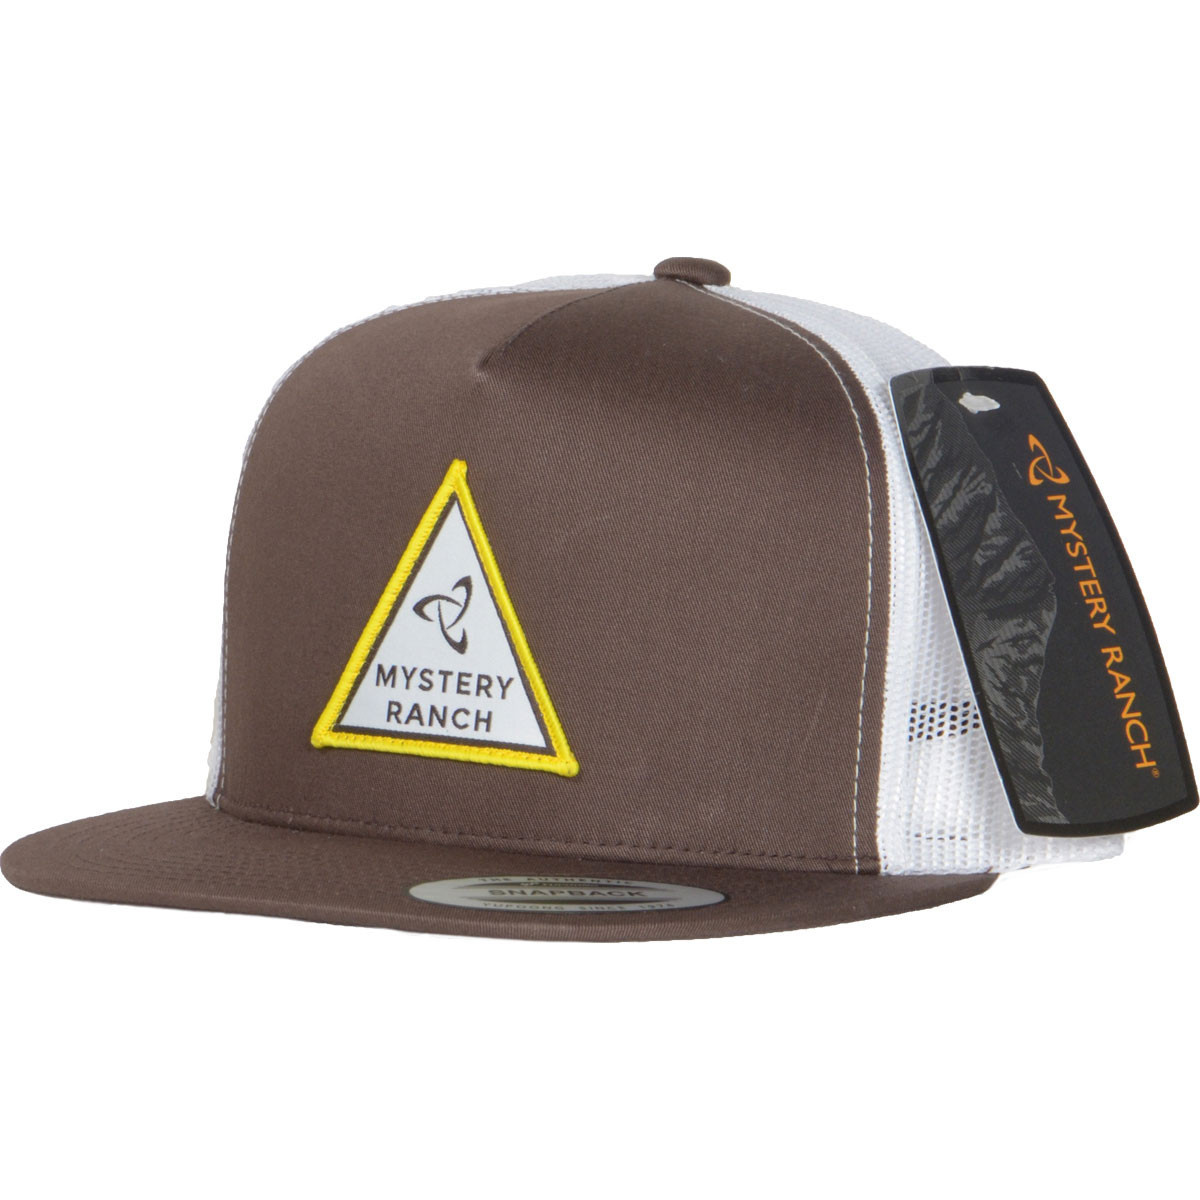 Mystery Ranch Mystery Ranch Triangle Trucker Hat